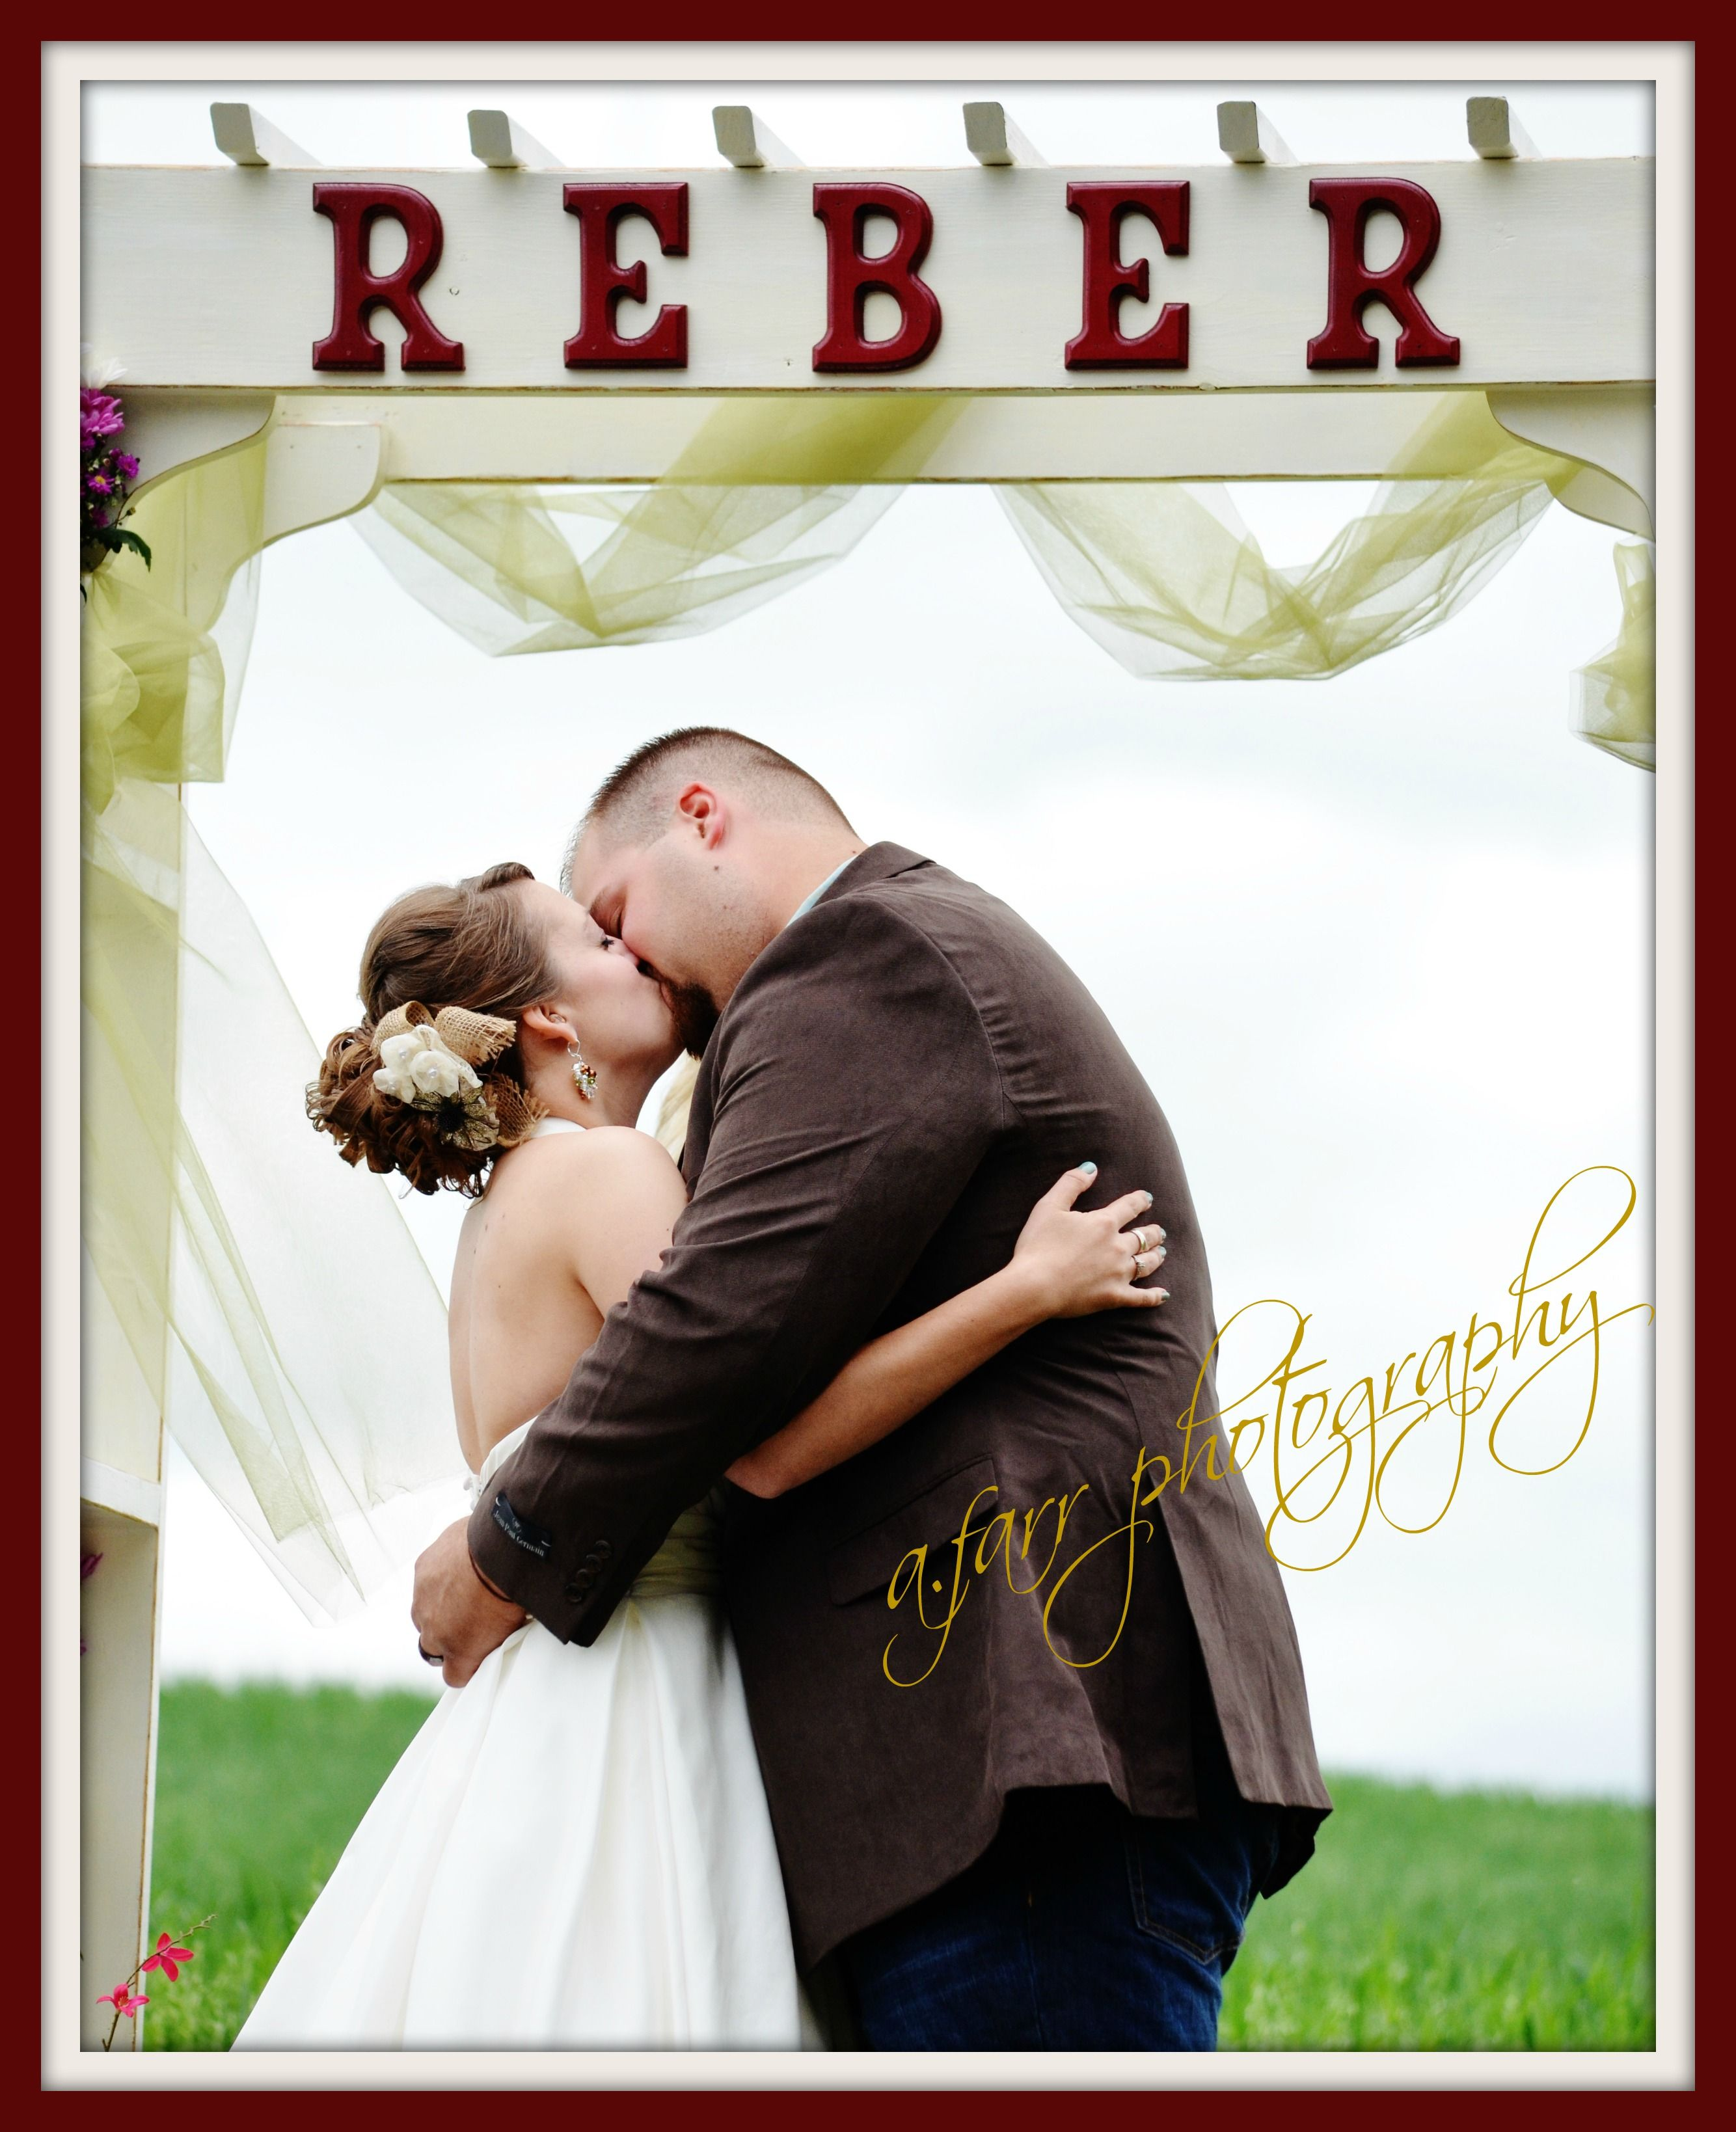 wedding photography pose idea.  remember to 'like' a.farr photography on facebook!